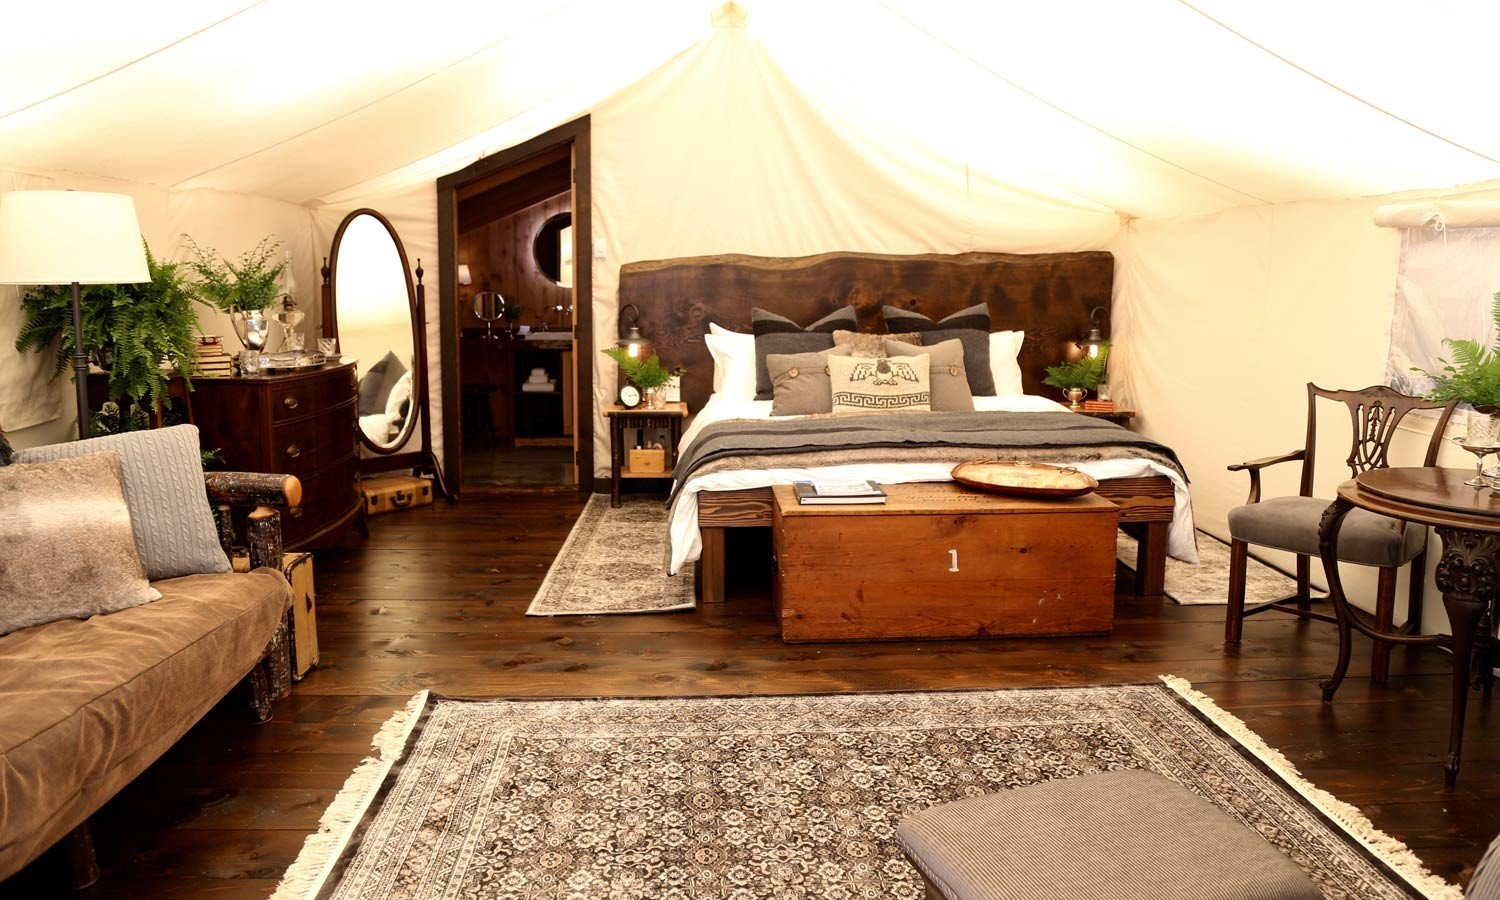 Glamping Luxury Travel Outdoors + Adventure Trip Ideas Weekend Getaways floor indoor room Living sofa furniture Bedroom bed bed frame interior design flooring wood mattress estate Suite hardwood area decorated